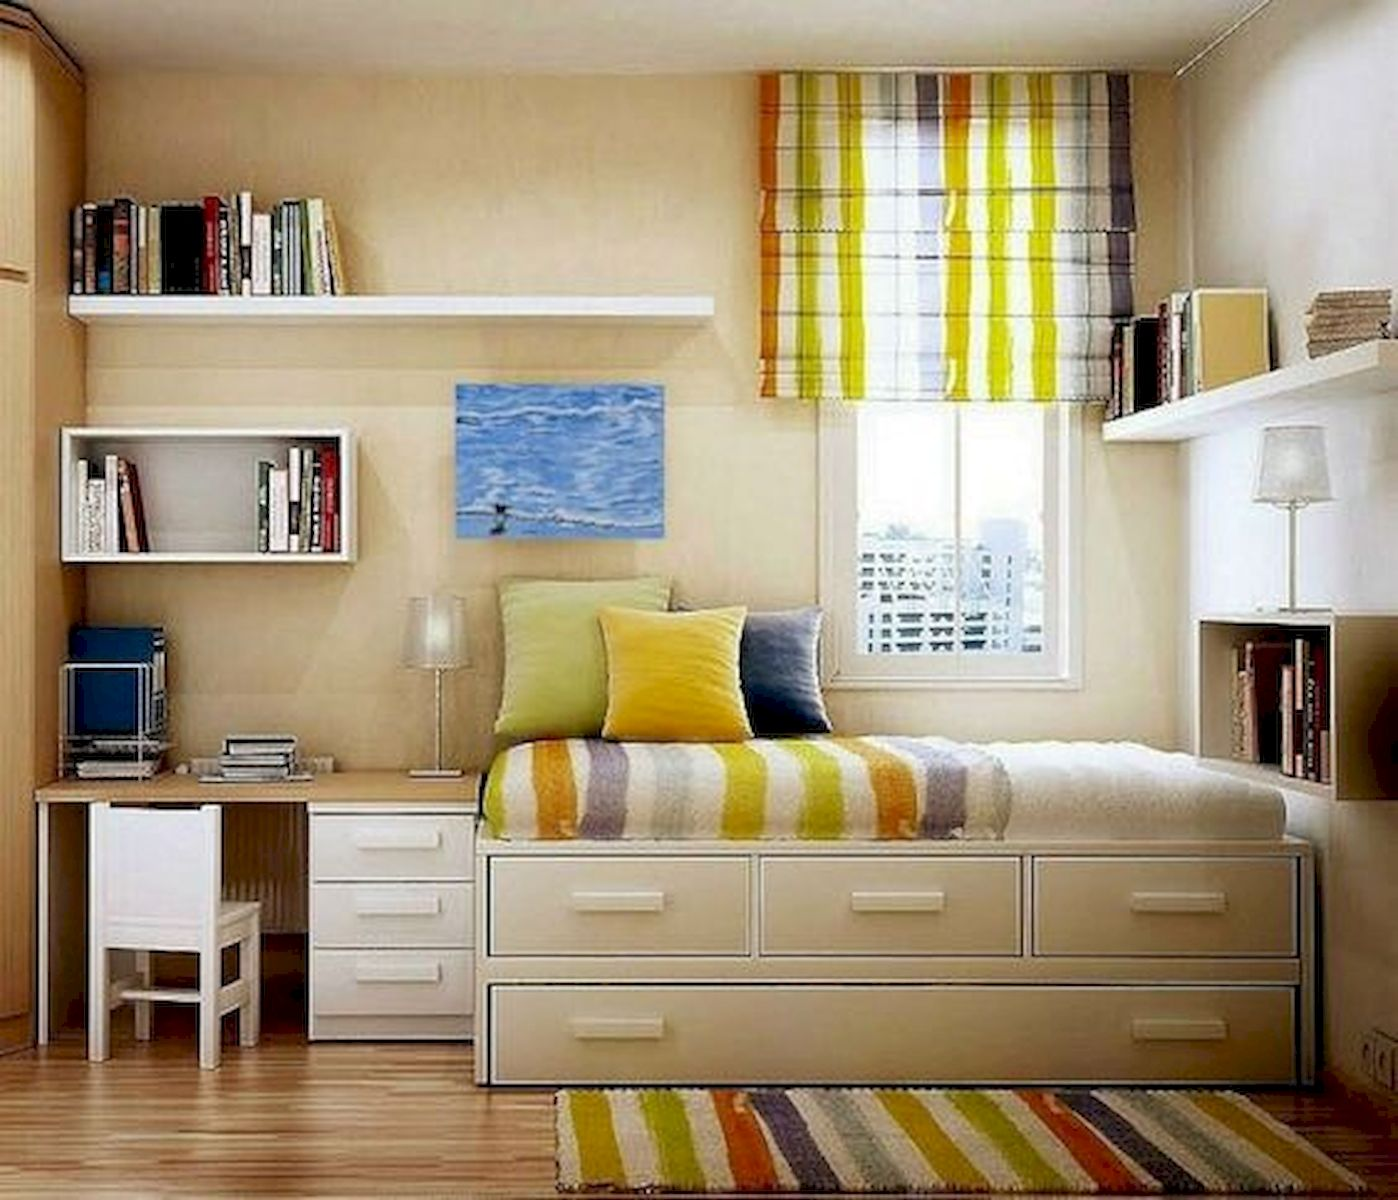 60 Brilliant Space Saving Ideas For Small Bedroom (47)